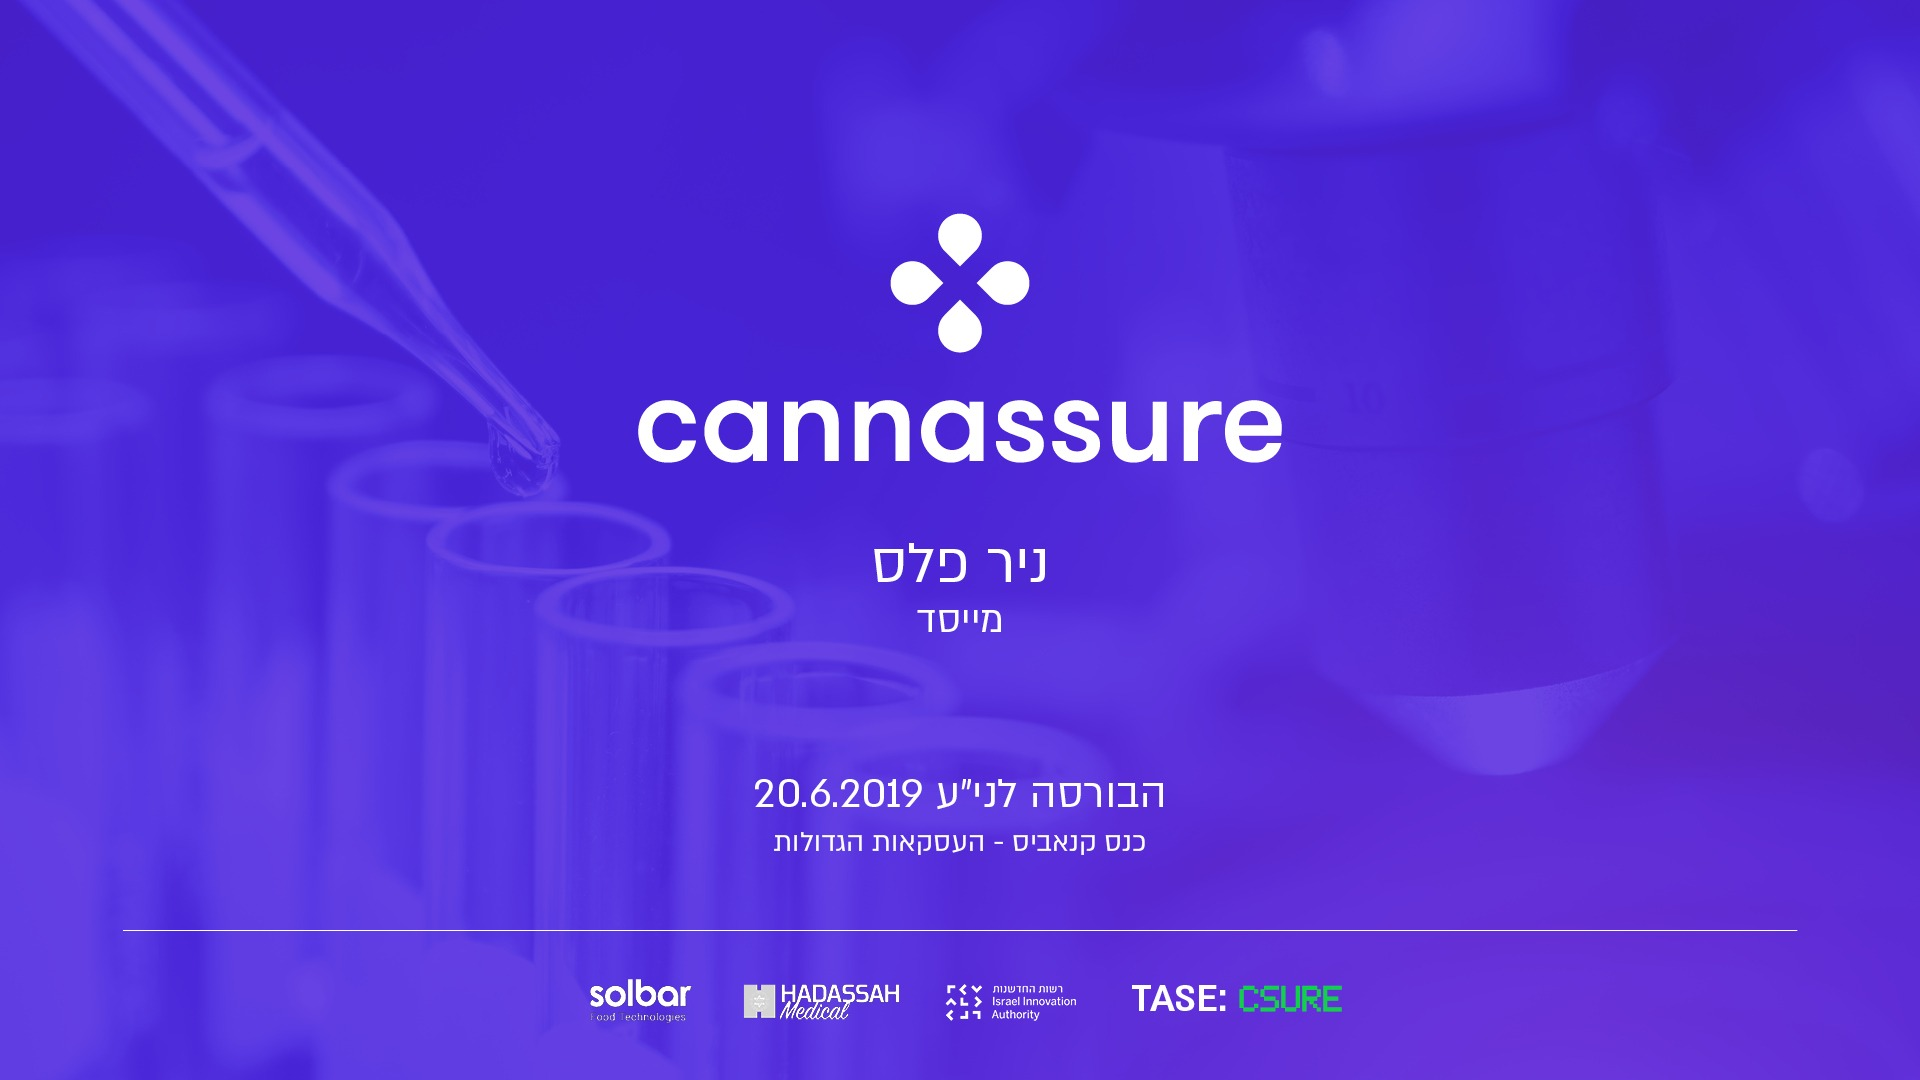 Nir Peles is talking about Cannassure in an investors event took place in TASE venue